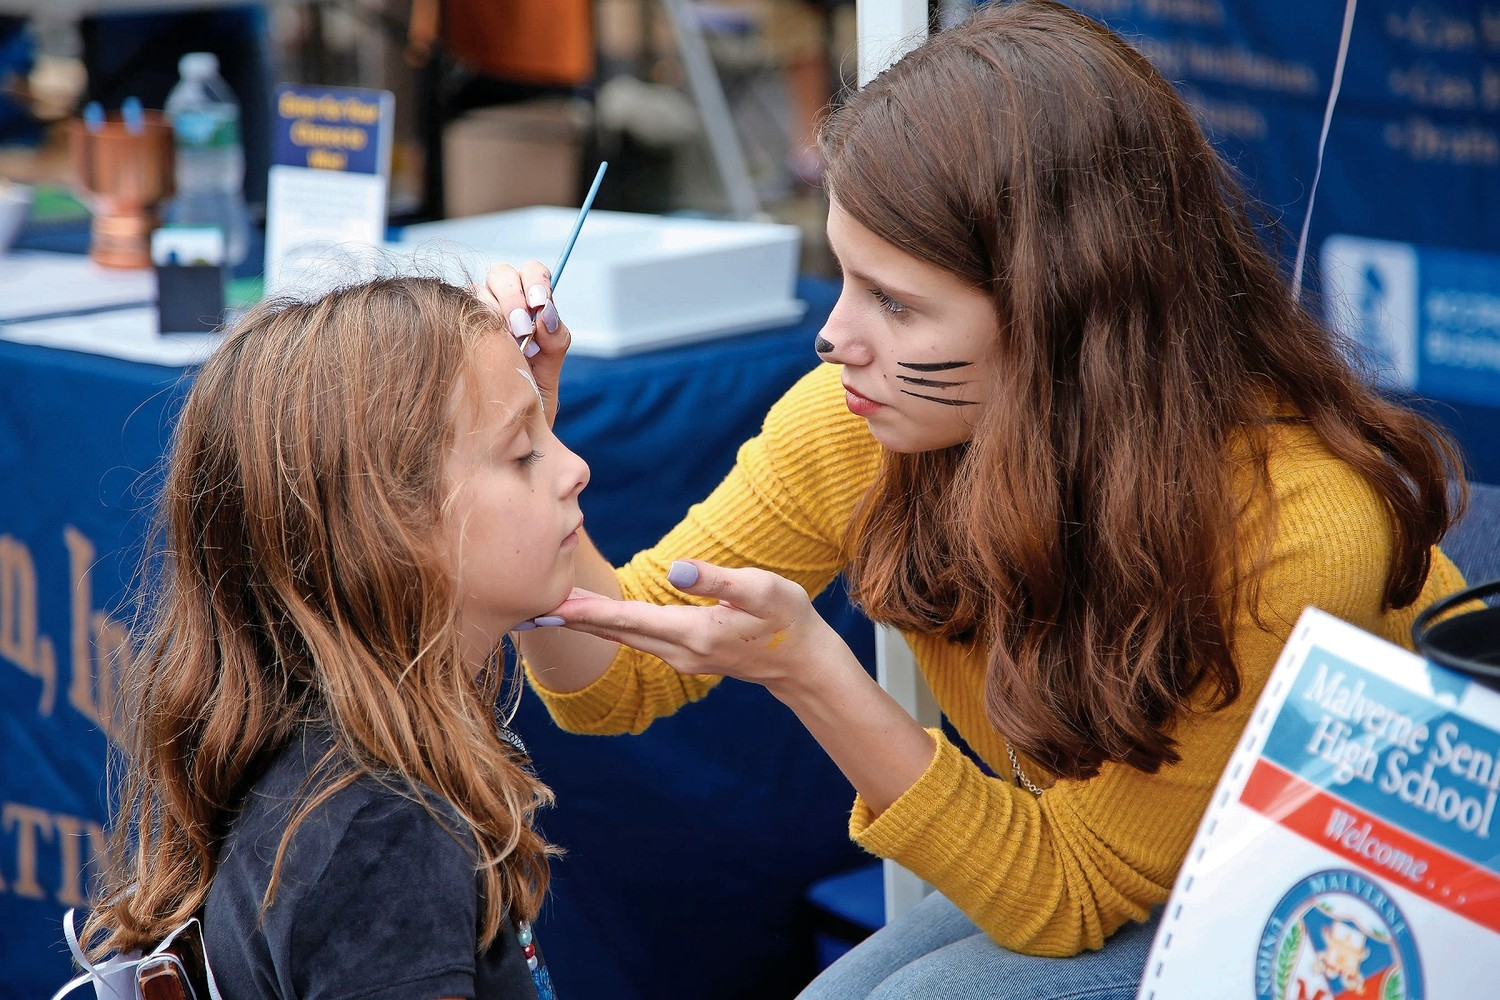 Liz Ray painted 6-year-old Caroline Lampiasi's face at Malverne High School's table.